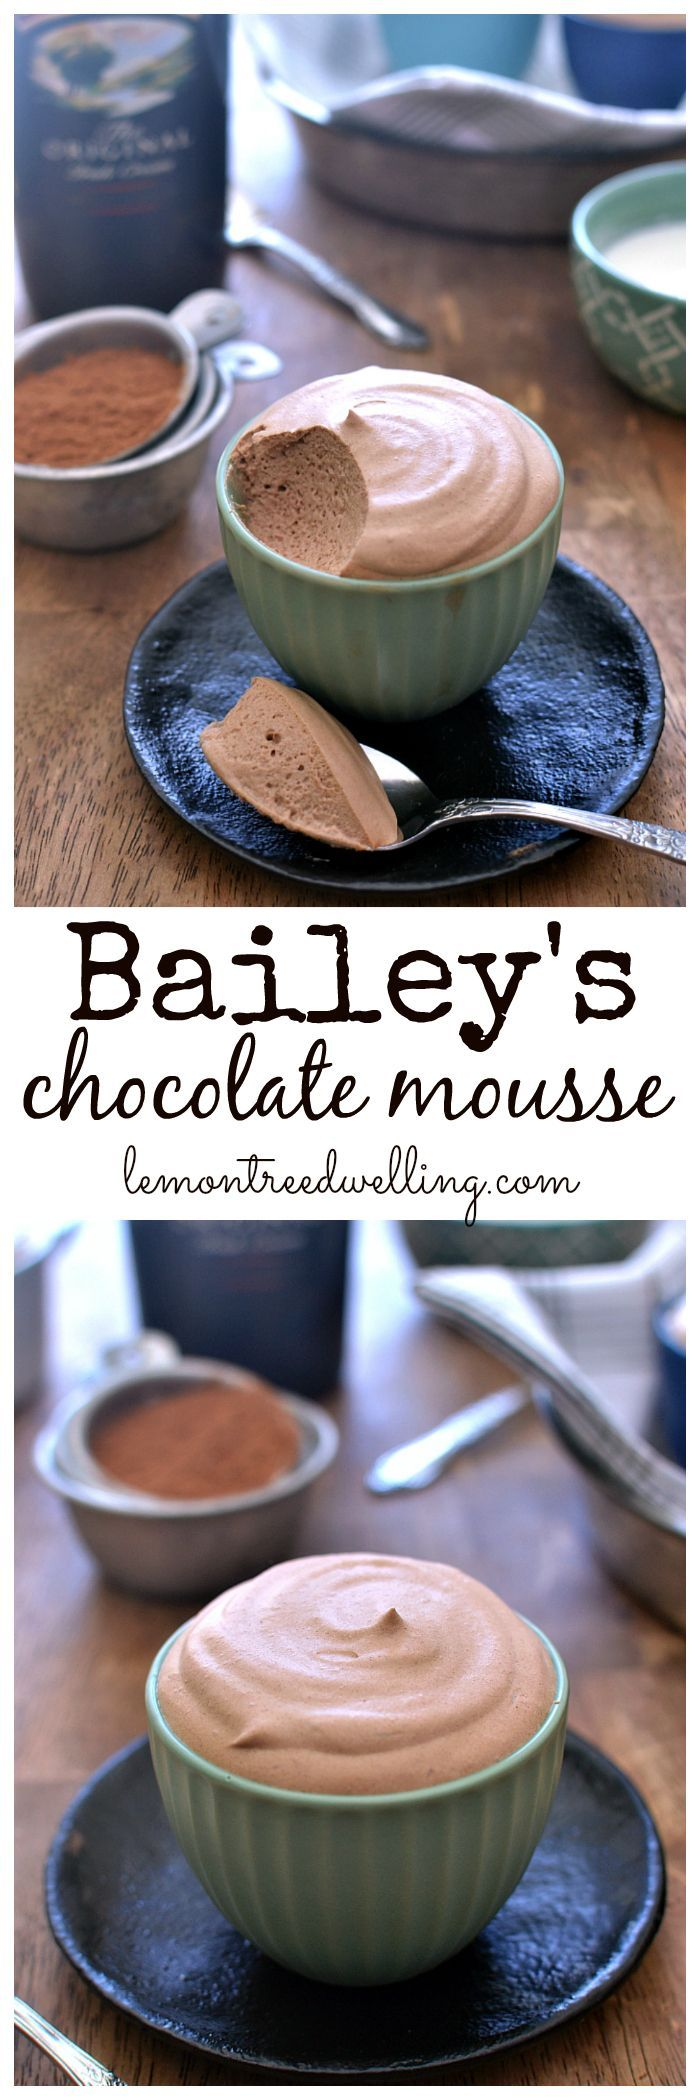 Bailey's Chocolate Mousse -